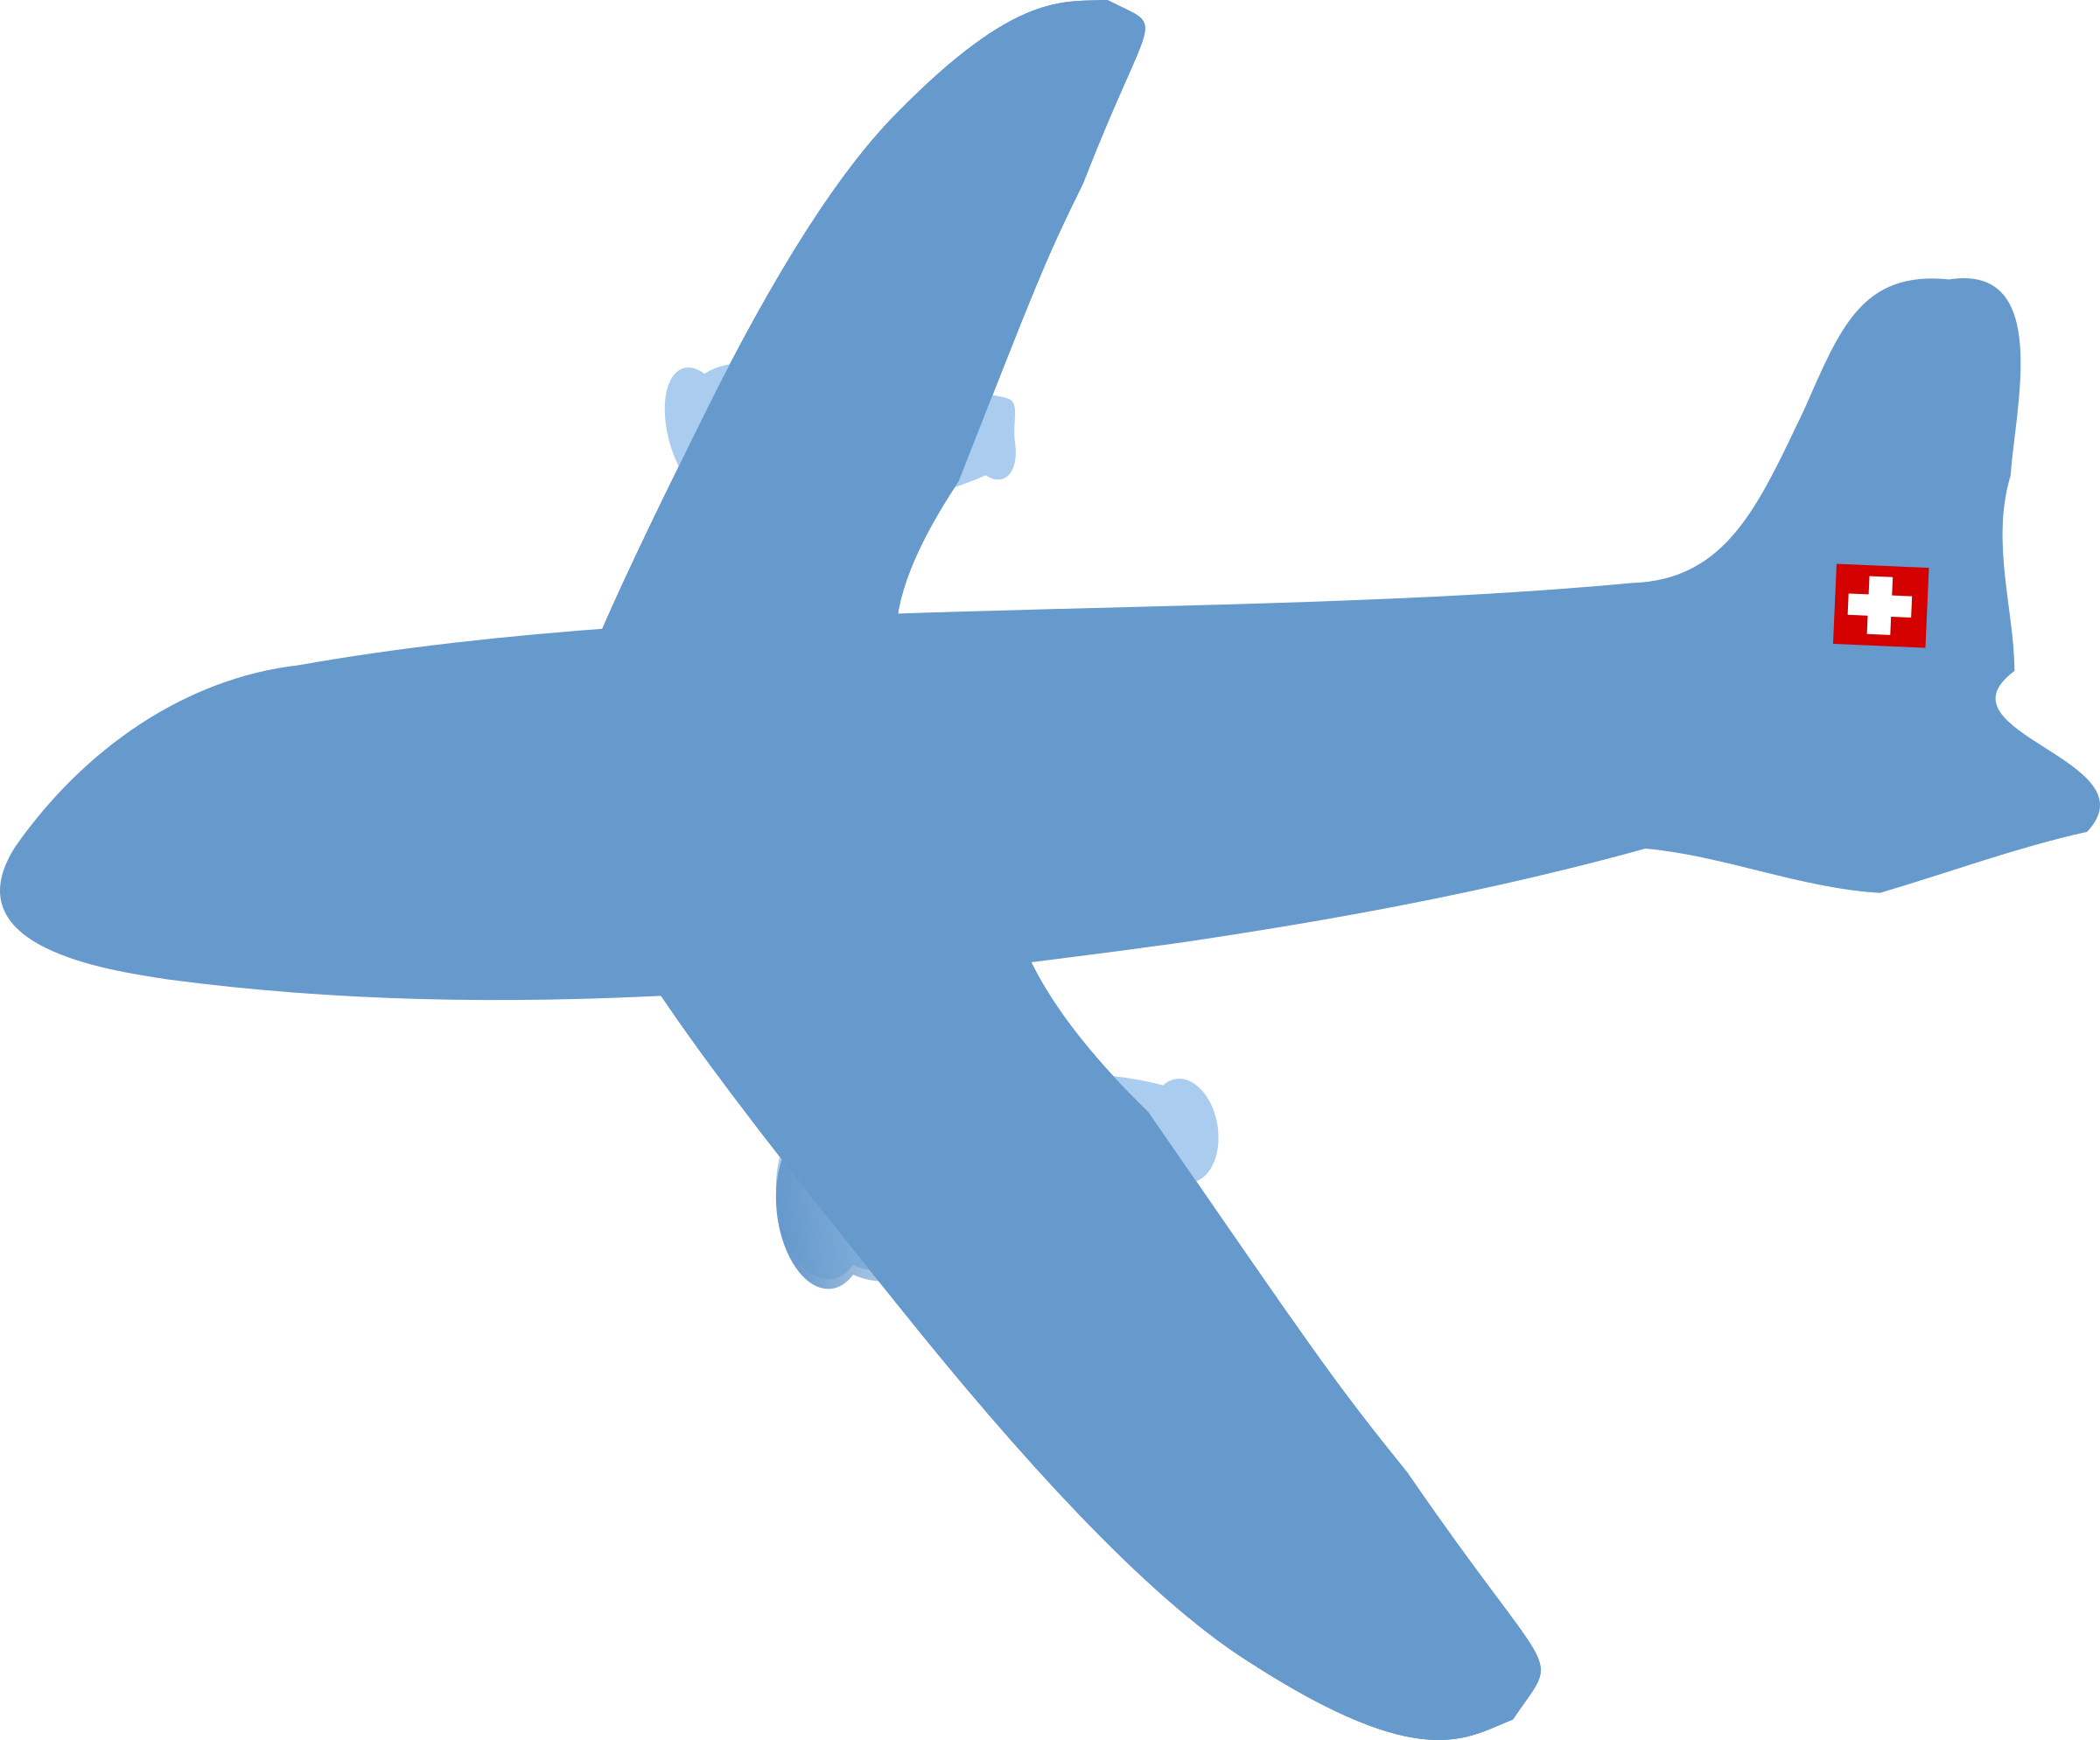 Swiss aircraft by chatard